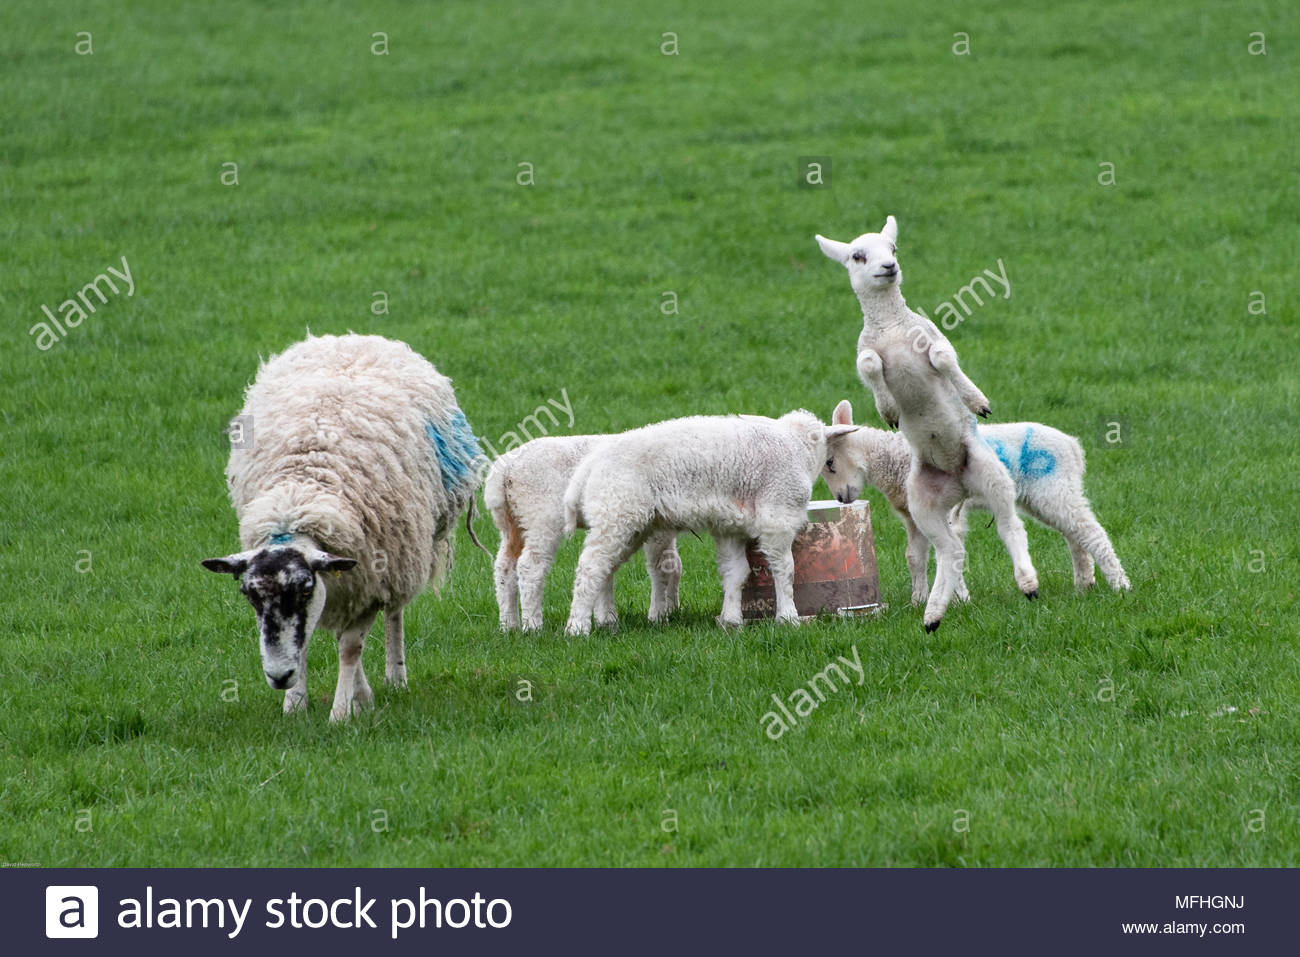 Group of lambs in a field on an English farm with one ewe and four lambs, one of which is leaping into the air. - Stock Image